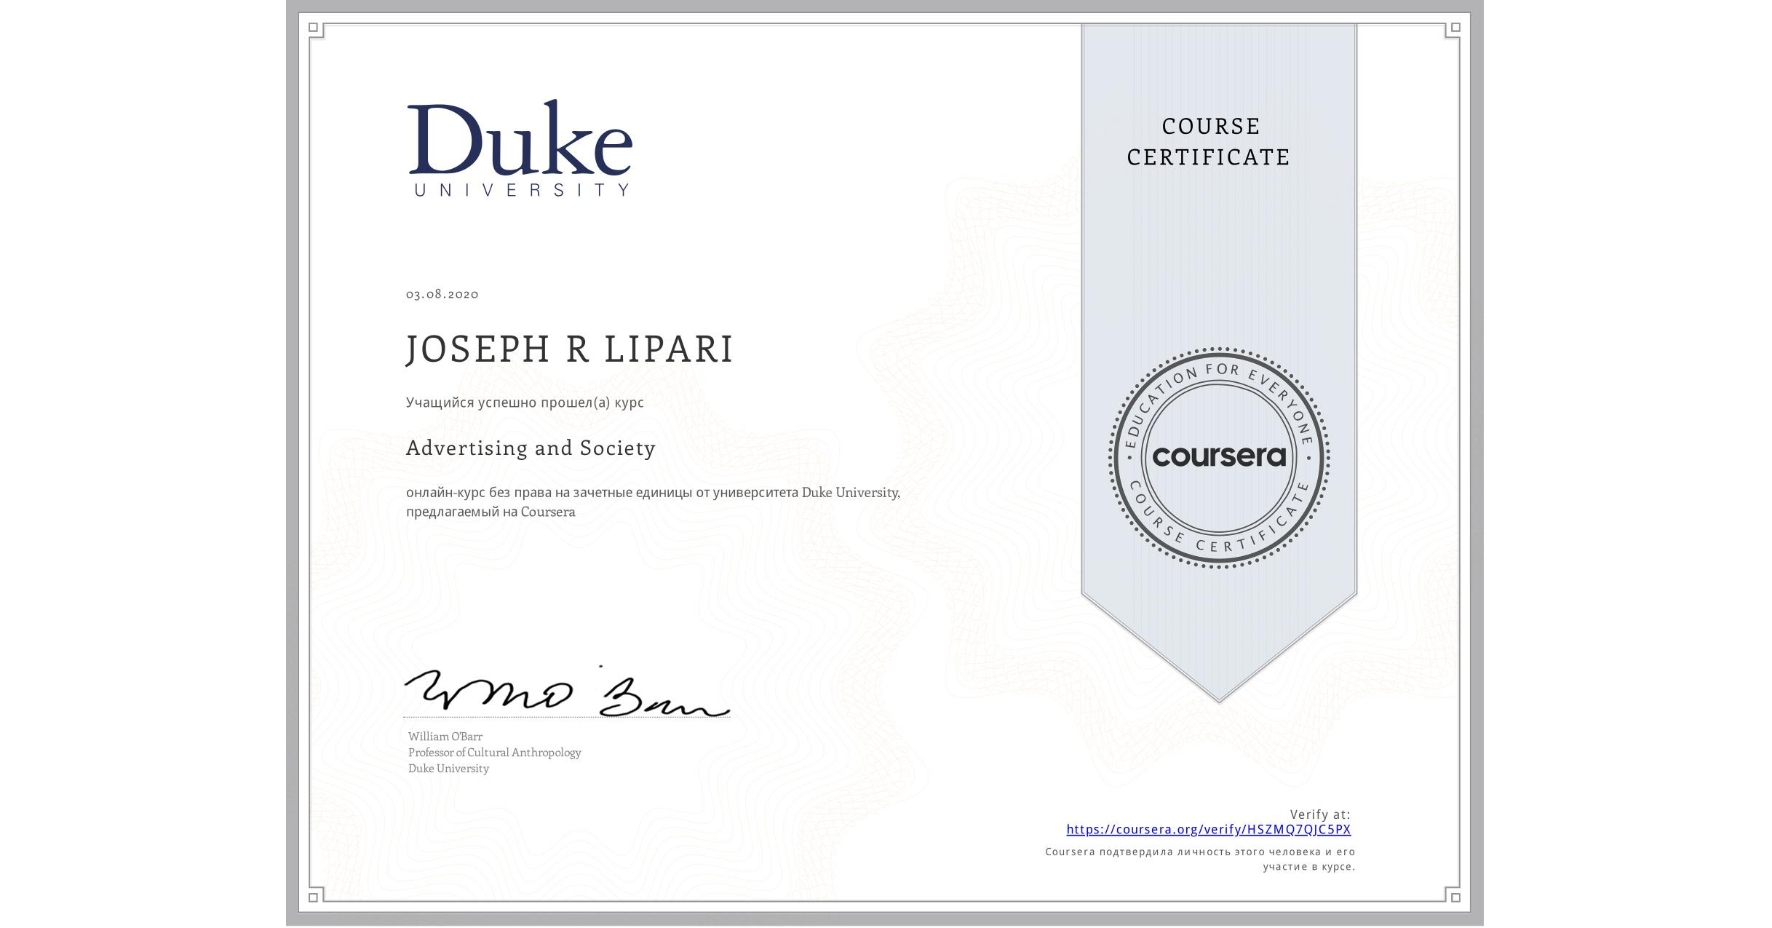 View certificate for JOSEPH R  LIPARI, Advertising and Society, an online non-credit course authorized by Duke University and offered through Coursera